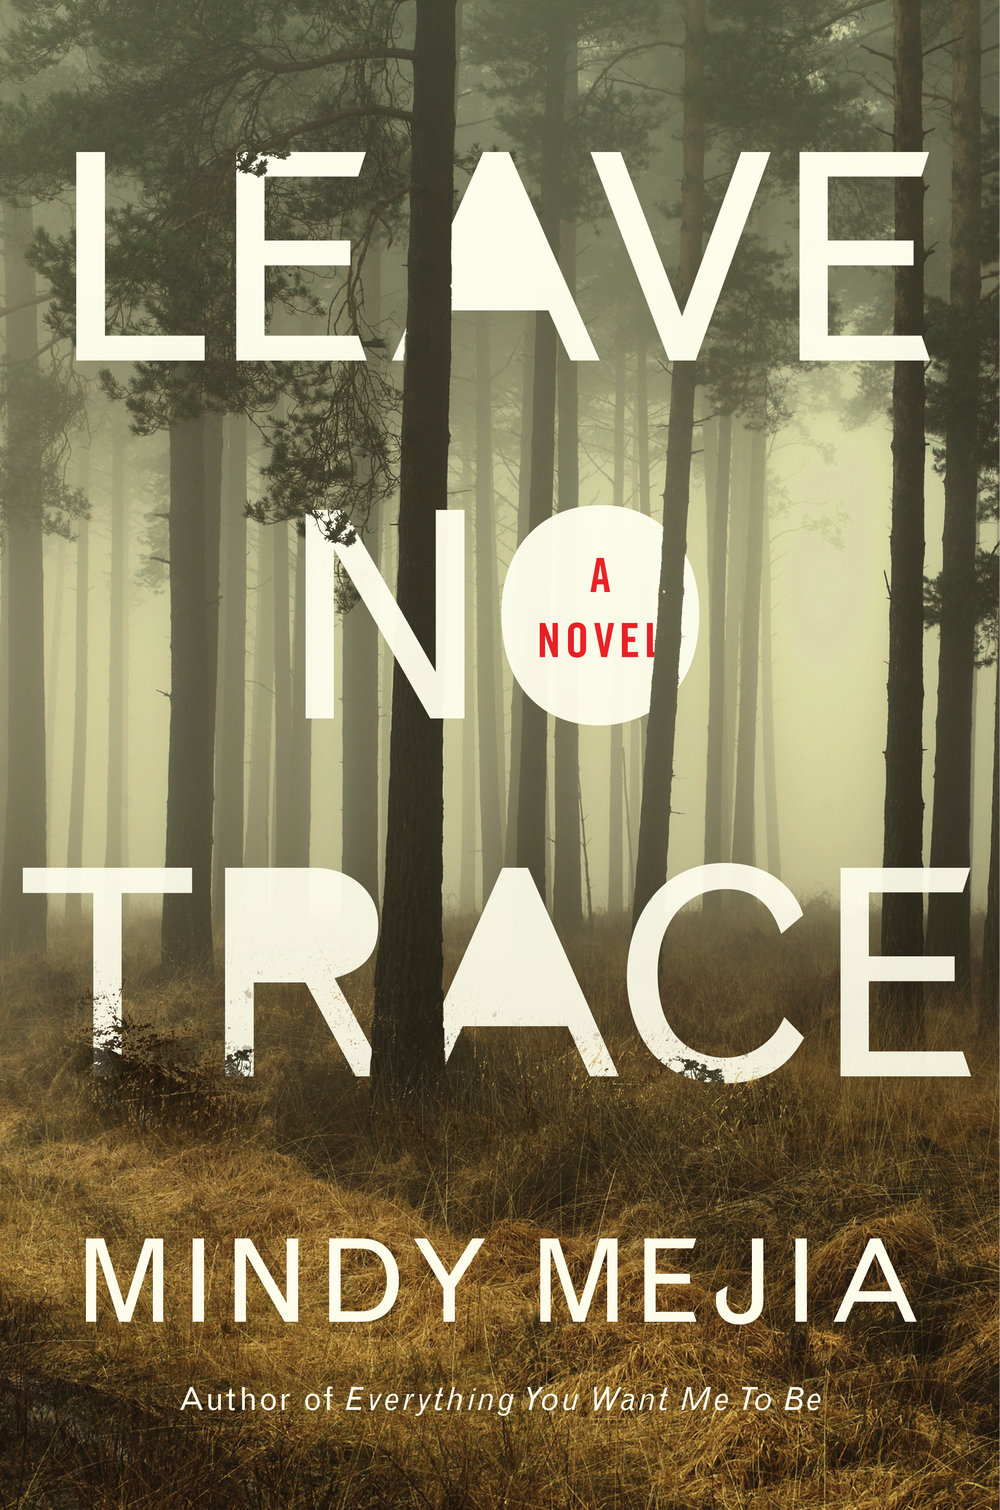 Leave No Trace by Thriller Author Mindy Mejia